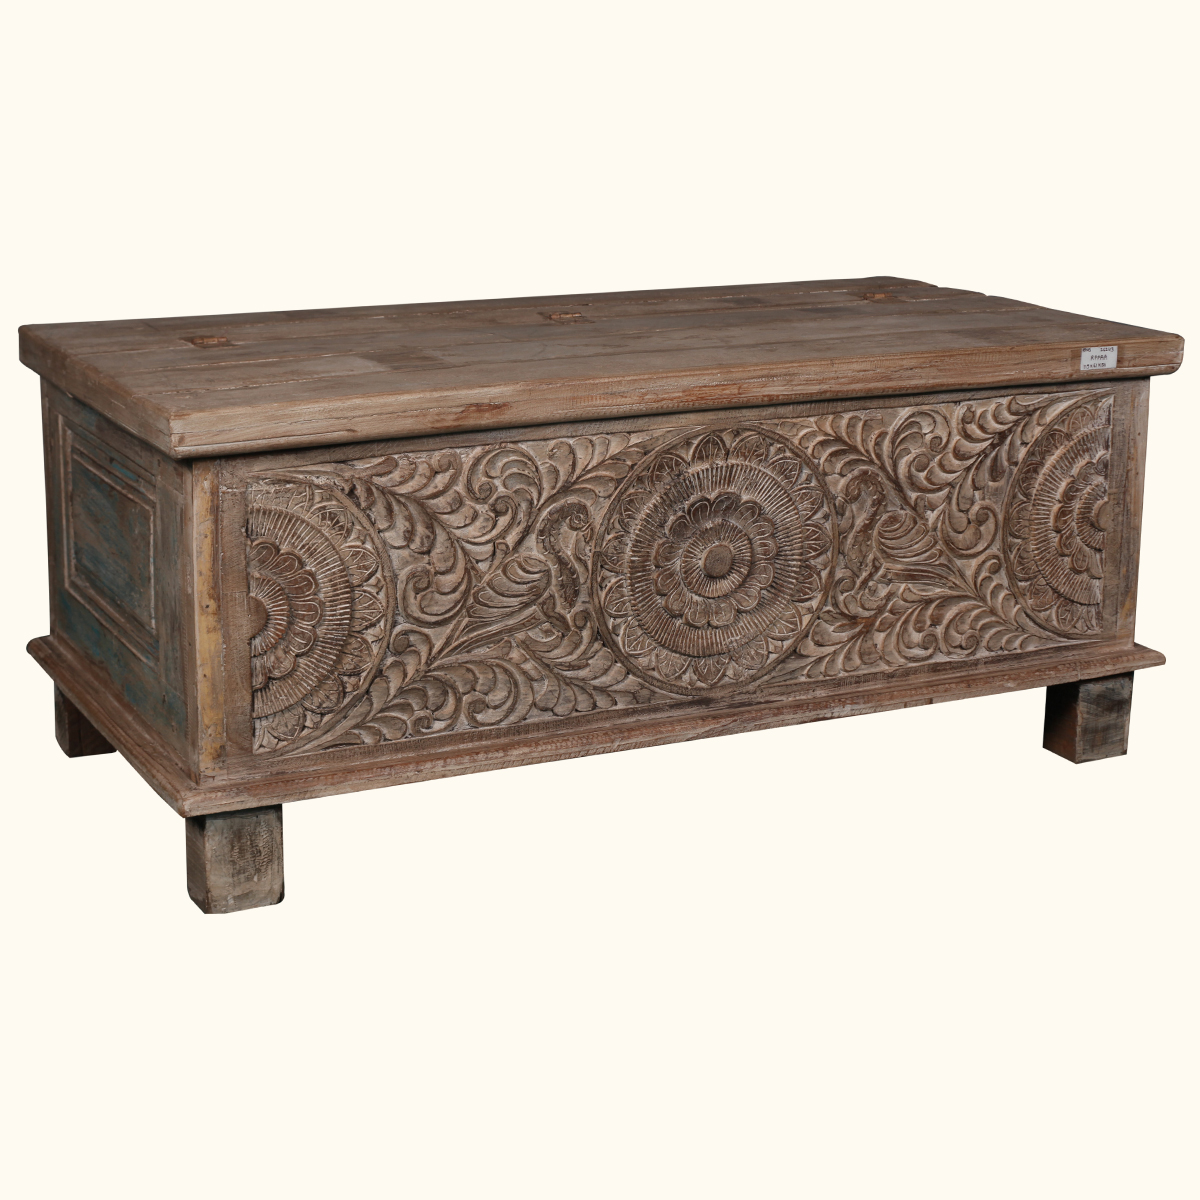 Rustic hand carved reclaimed wood coffee table trunk storage hope chest box ebay Hand carved coffee table